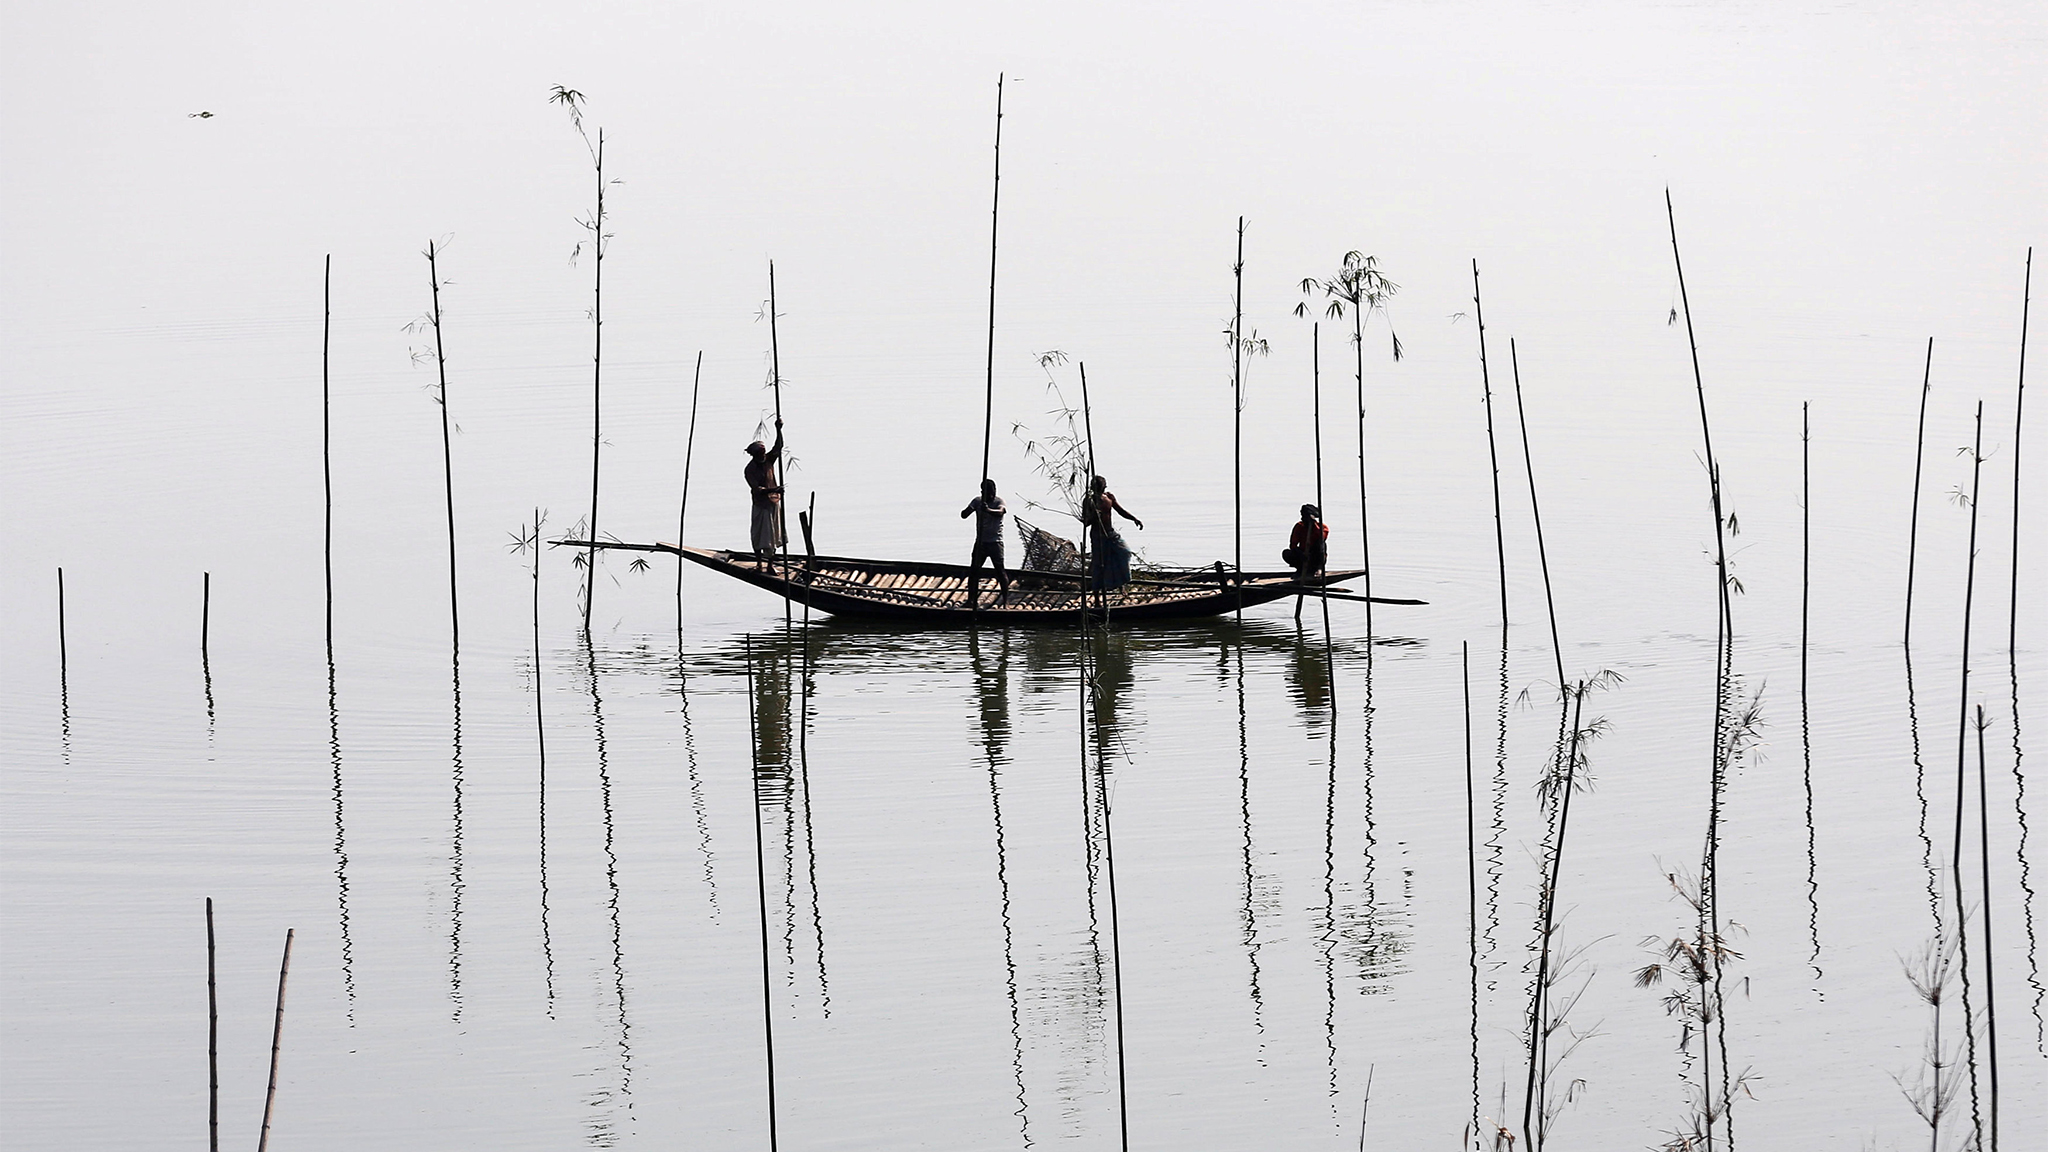 Fishermen place bamboo, where they will later place tree branches and fish food, to catch fish in a river in Dhaka